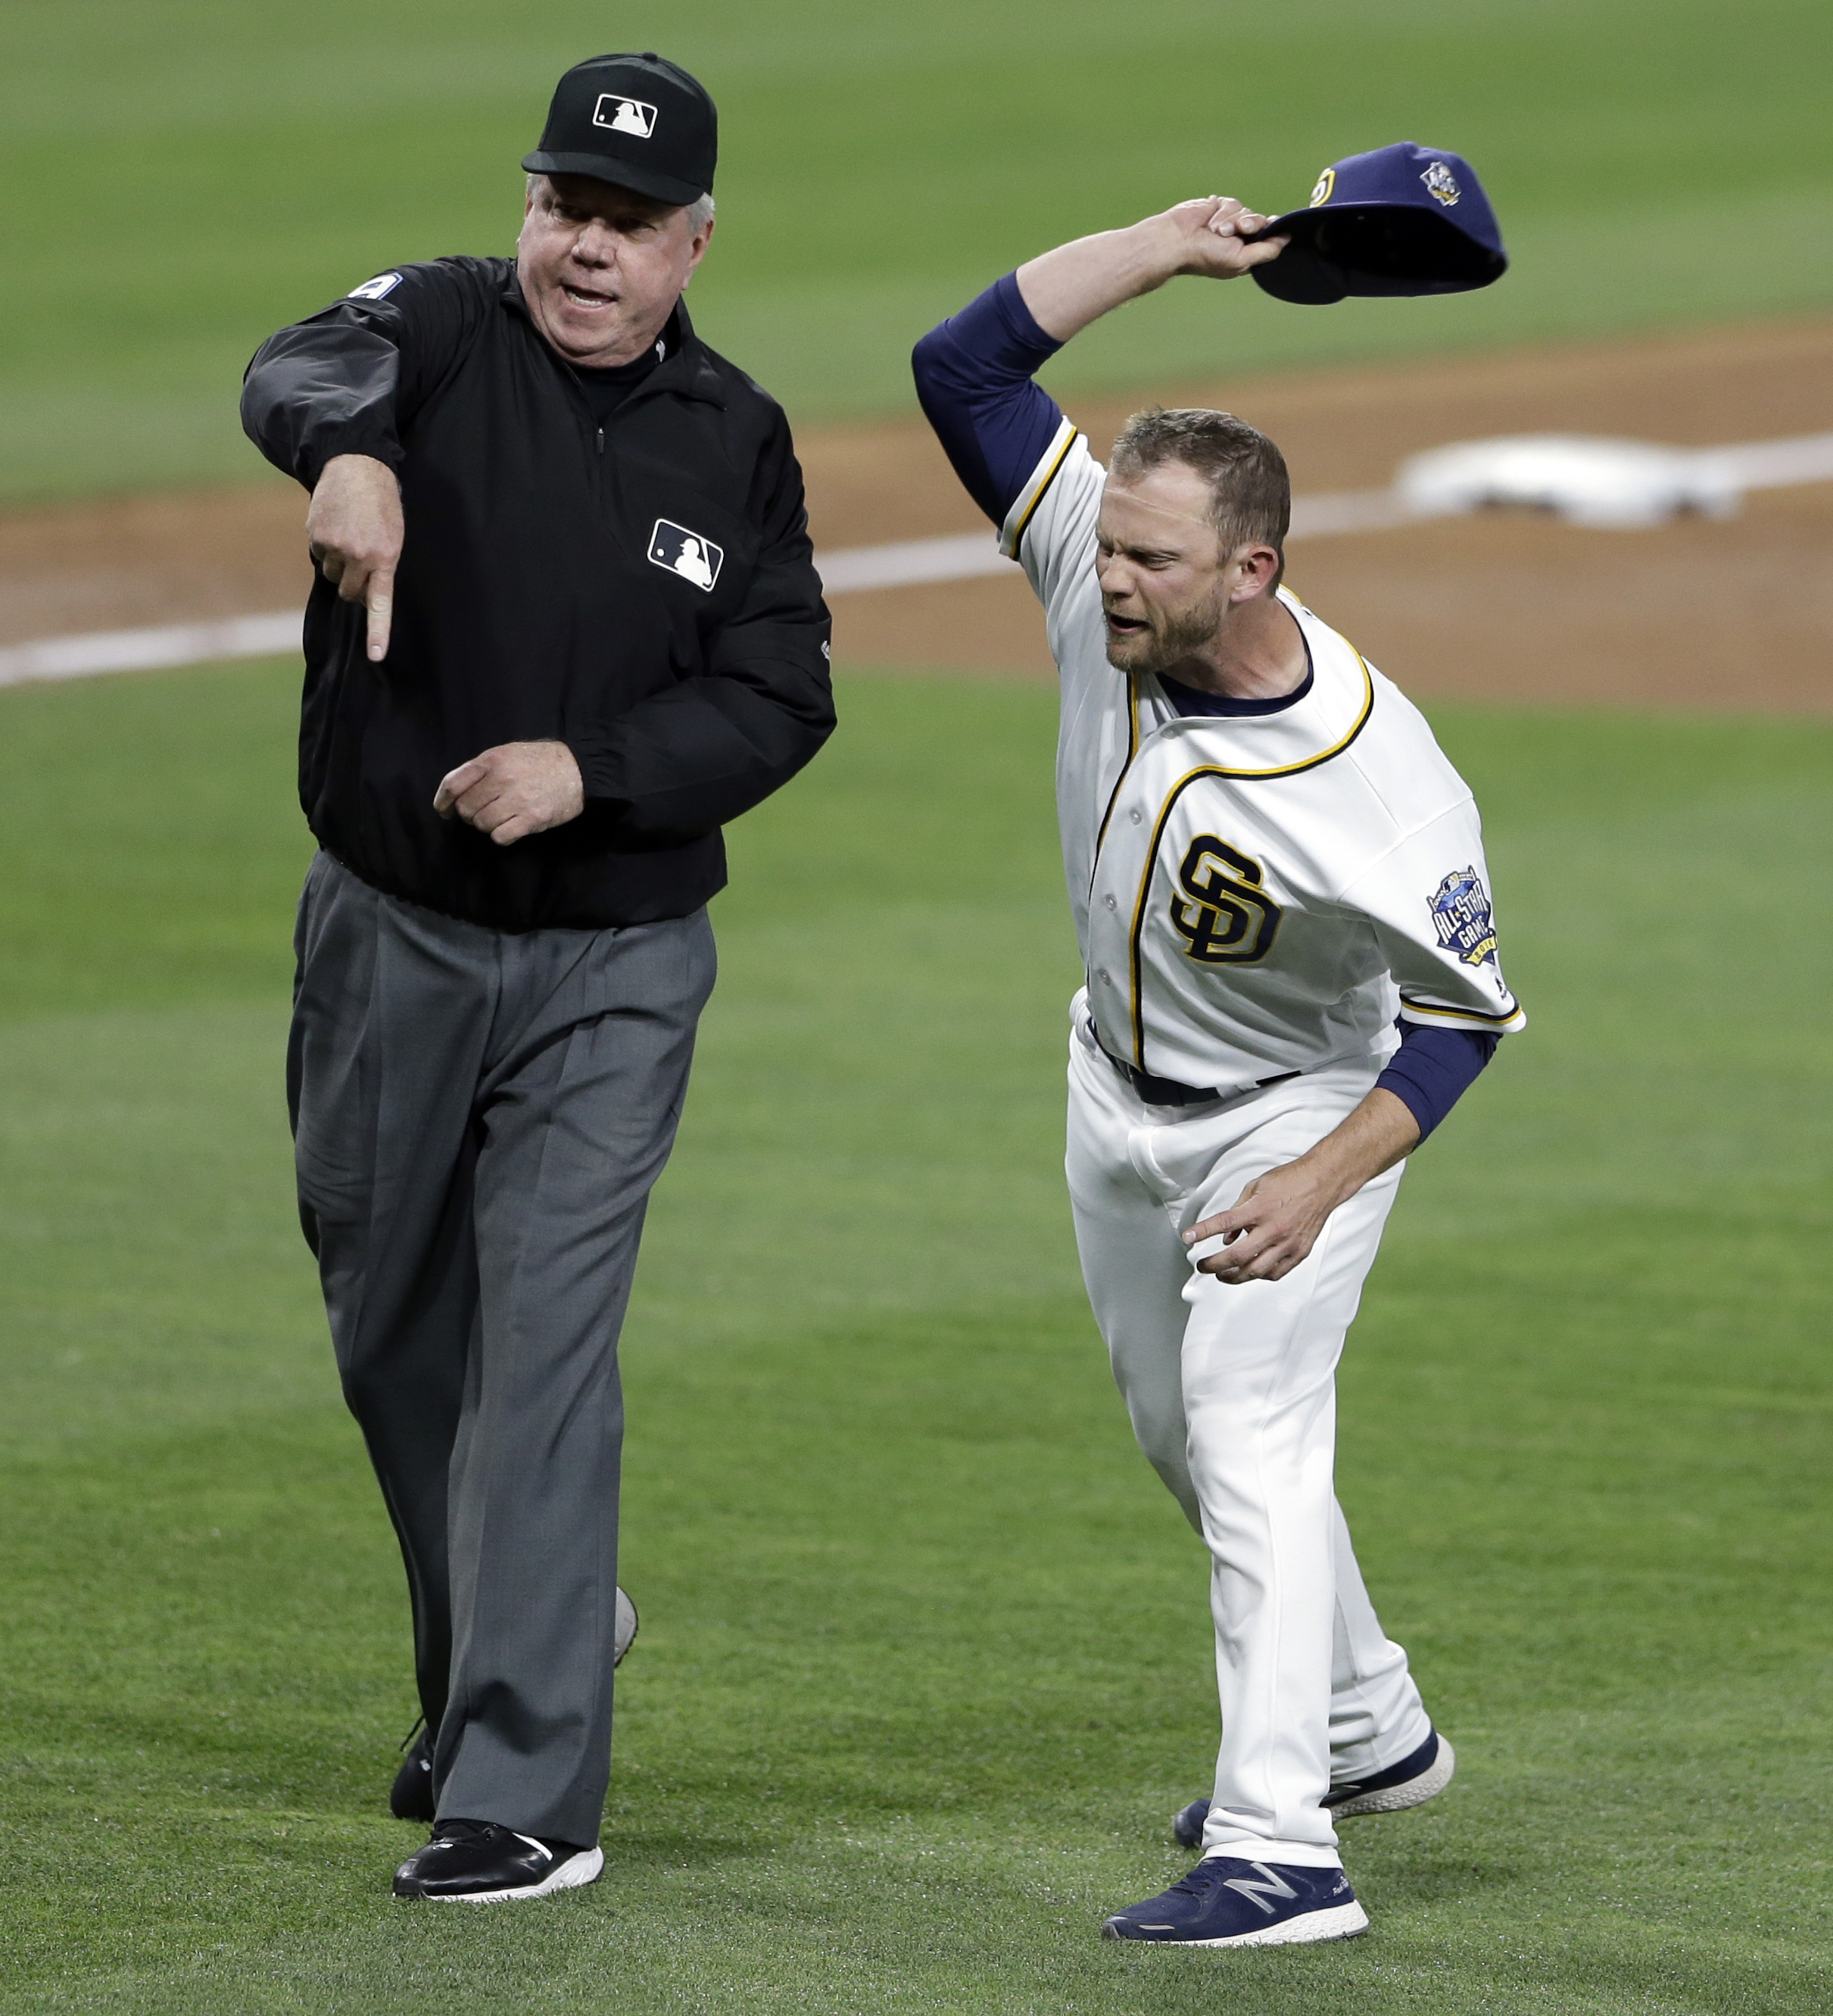 San Diego Padres manager Andy Green, right, throws his cap as he is ejected by third base umpire Brian Gorman after complaining about a call during the third inning of a baseball game against the Pittsburgh Pirates on Tuesday, April 19, 2016, in San Diego